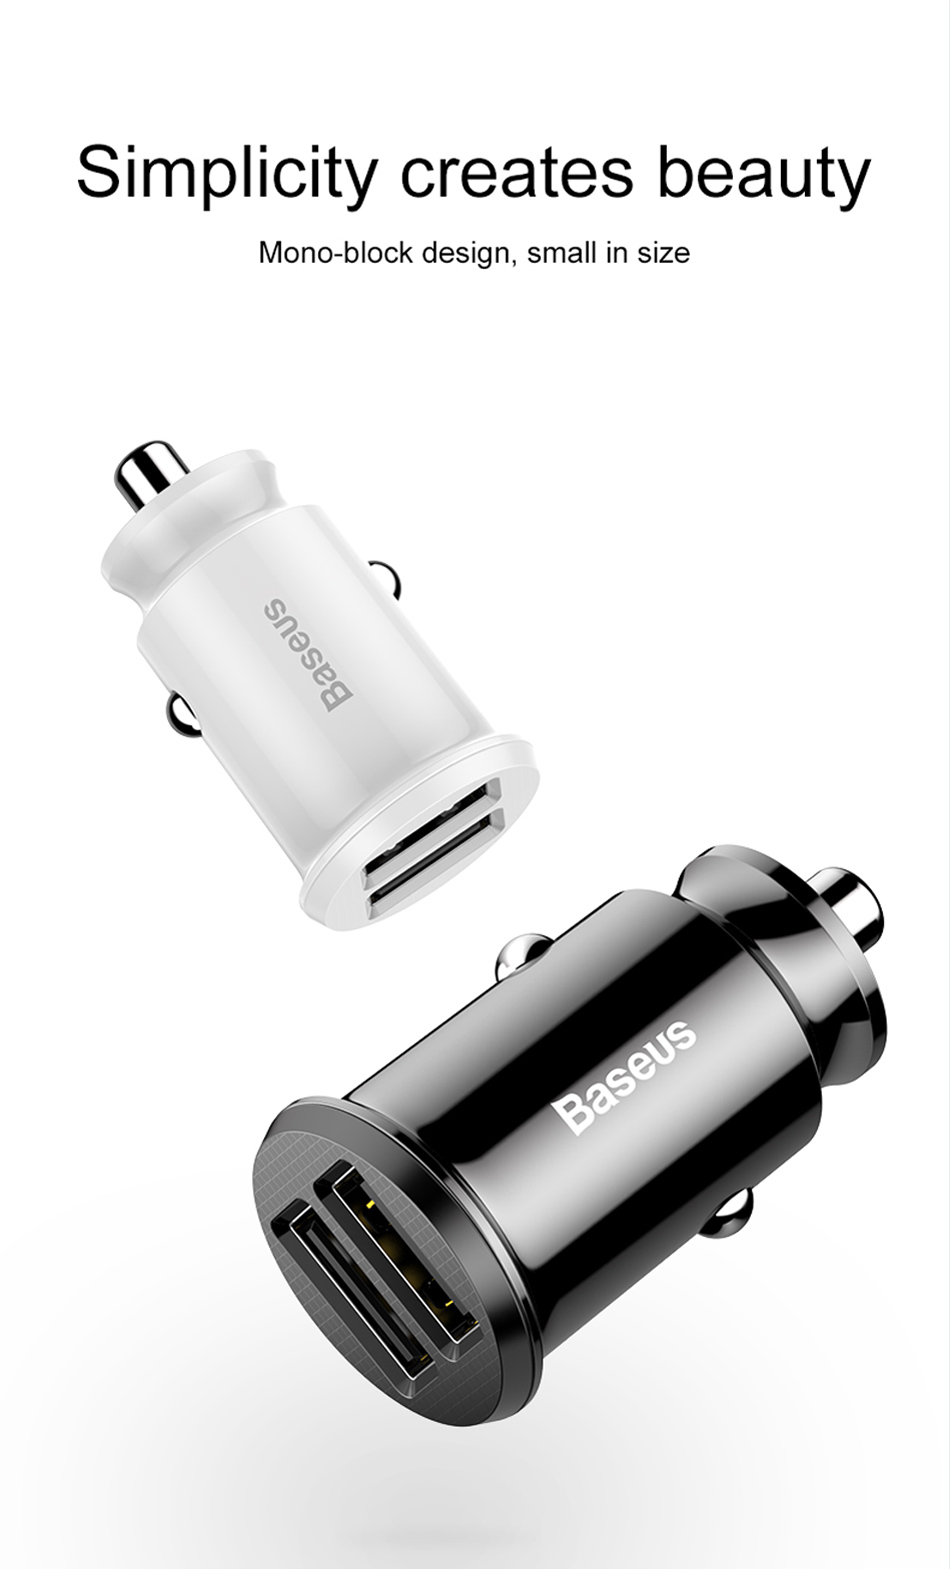 Baseus Mini USB Car Charger For Mobile Phone Tablet GPS 3.1A Fast Charger Car Charger Dual USB Car Phone Charger Adapter in Car-in Car Chargers from Cellphones & Telecommunications on Aliexpress.com | Alibaba Group 5